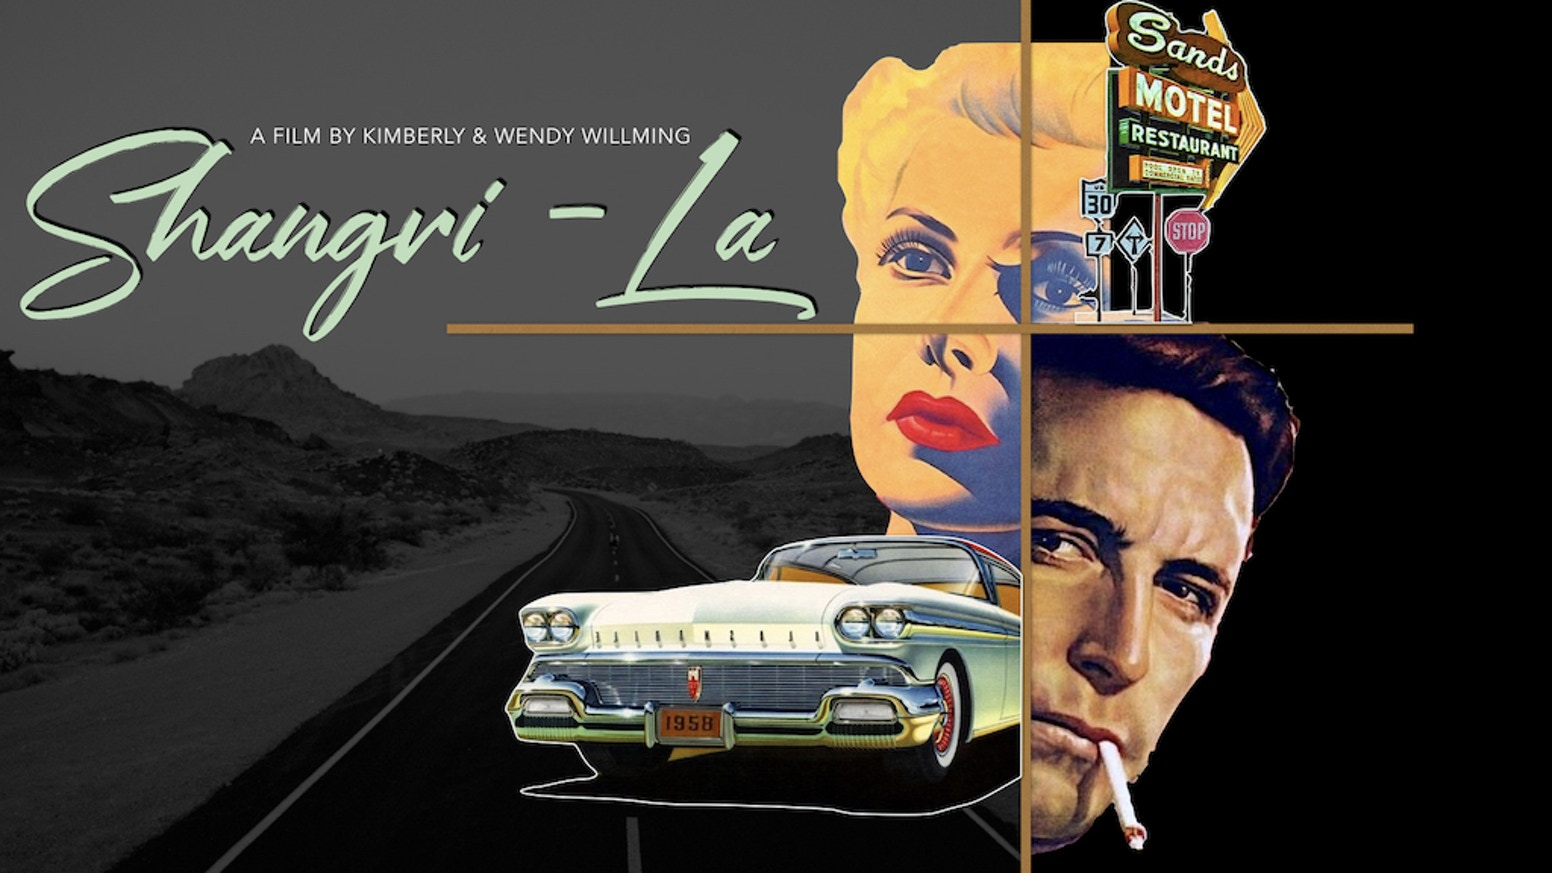 In 1958 Palm Springs, an exiled cop is pulled into a web of corruption revolving around Hollywood's biggest star.